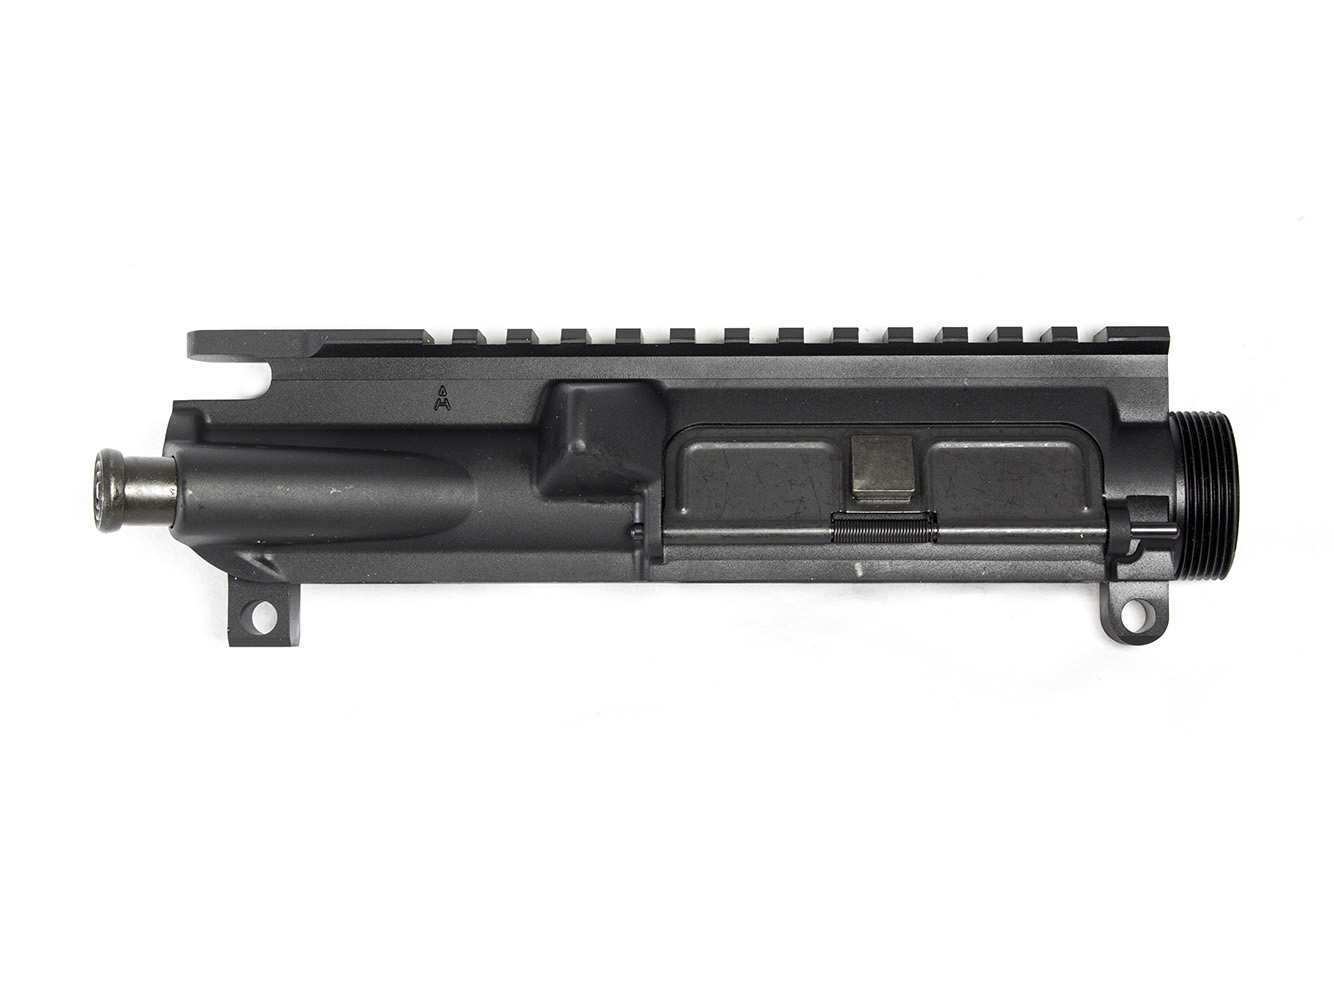 CMMG CMMG Upper Receiver Assembly, Mk4